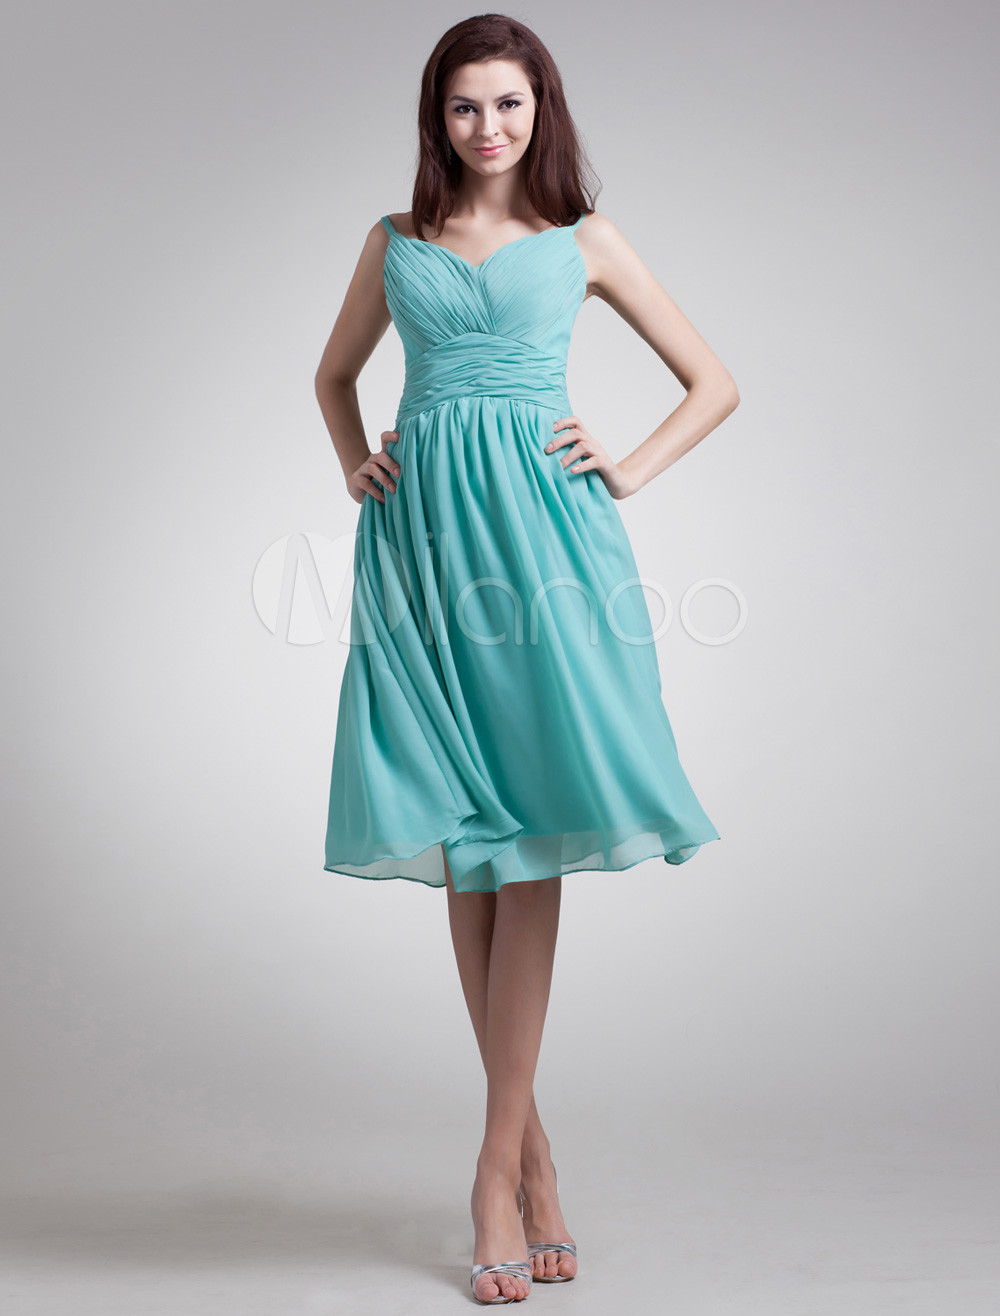 Chiffon Cocktail Dress Turquoise Sweetheart Ruched Prom Dress A Line Sleeveless Knee Length Bridesmaid Dress